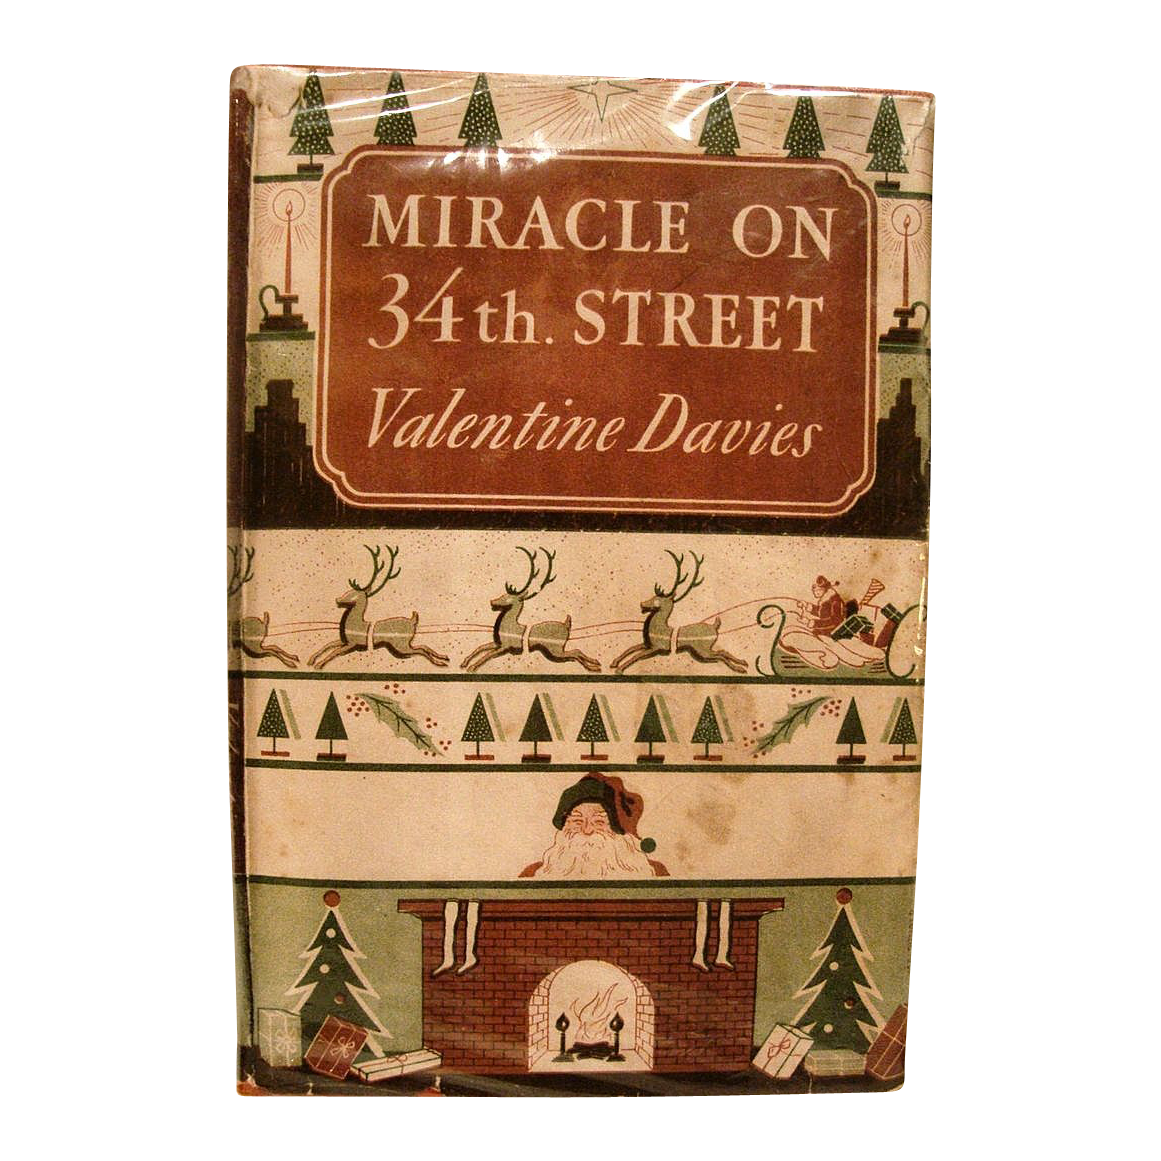 Miracle on 34th Street written by Valentine Davis, Published in 1947 by Harcourt, Brace and Company